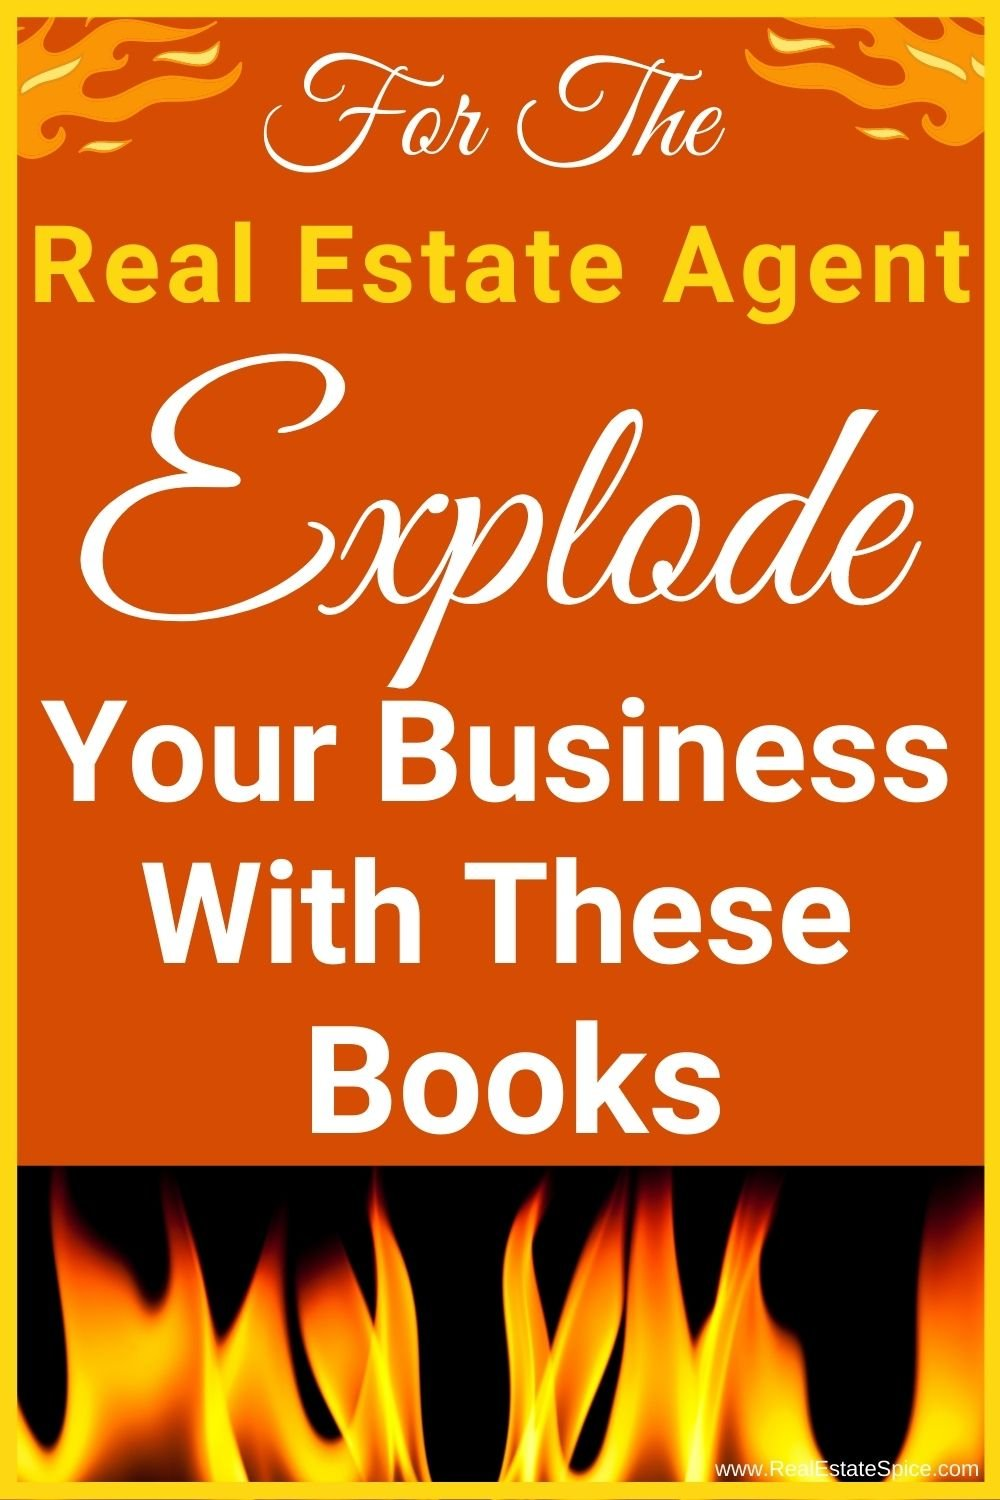 21 Best Real Estate Books For Agents - EPIC TIPS and Help